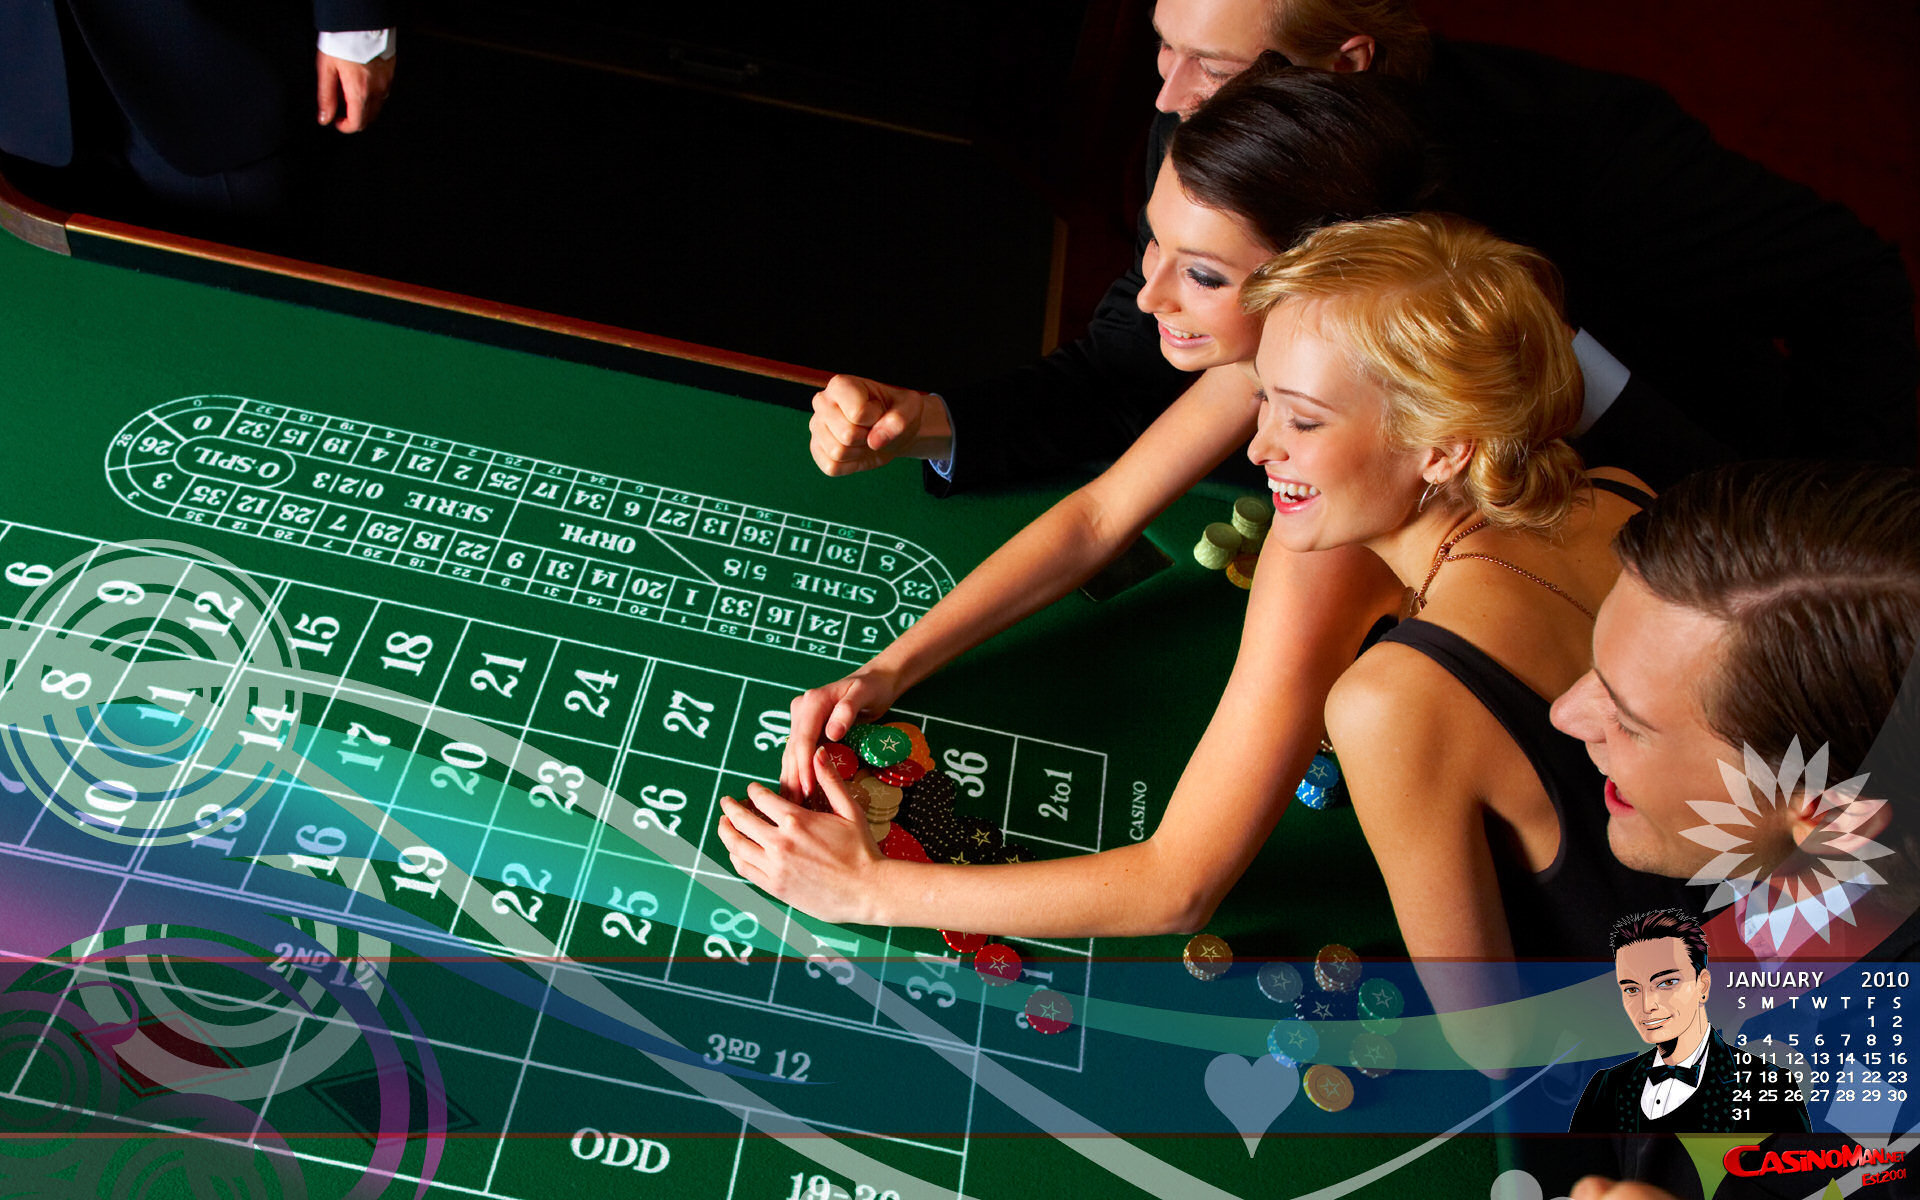 Five Reasons Folks Chuckle About Your Casino